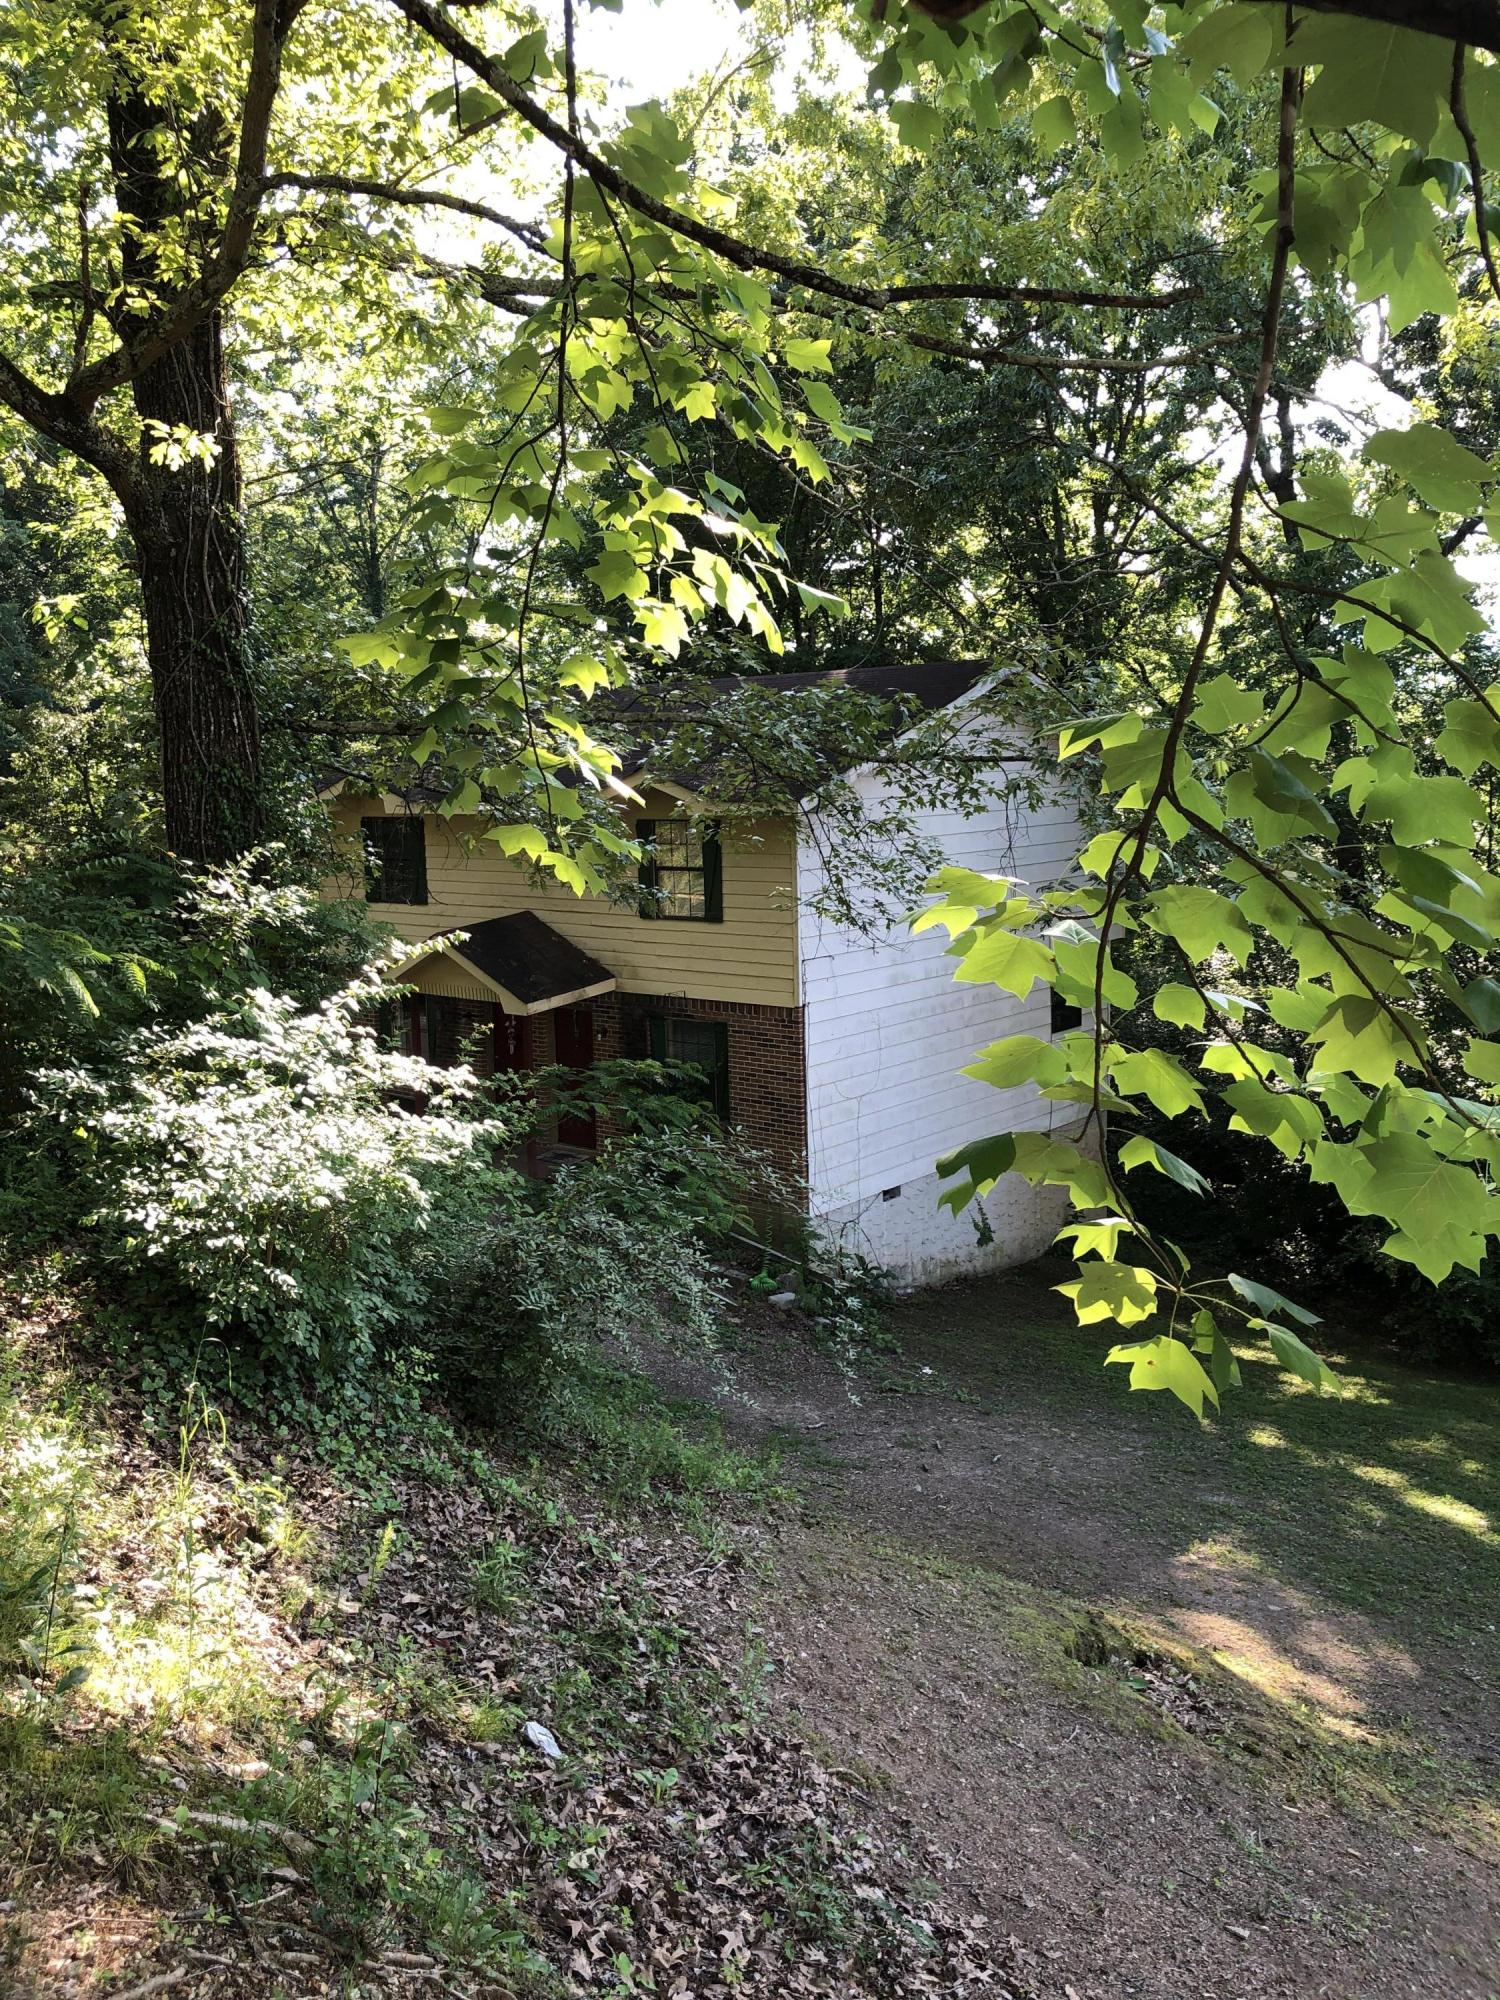 228 Cliftview Dr, Chattanooga, TN 37415